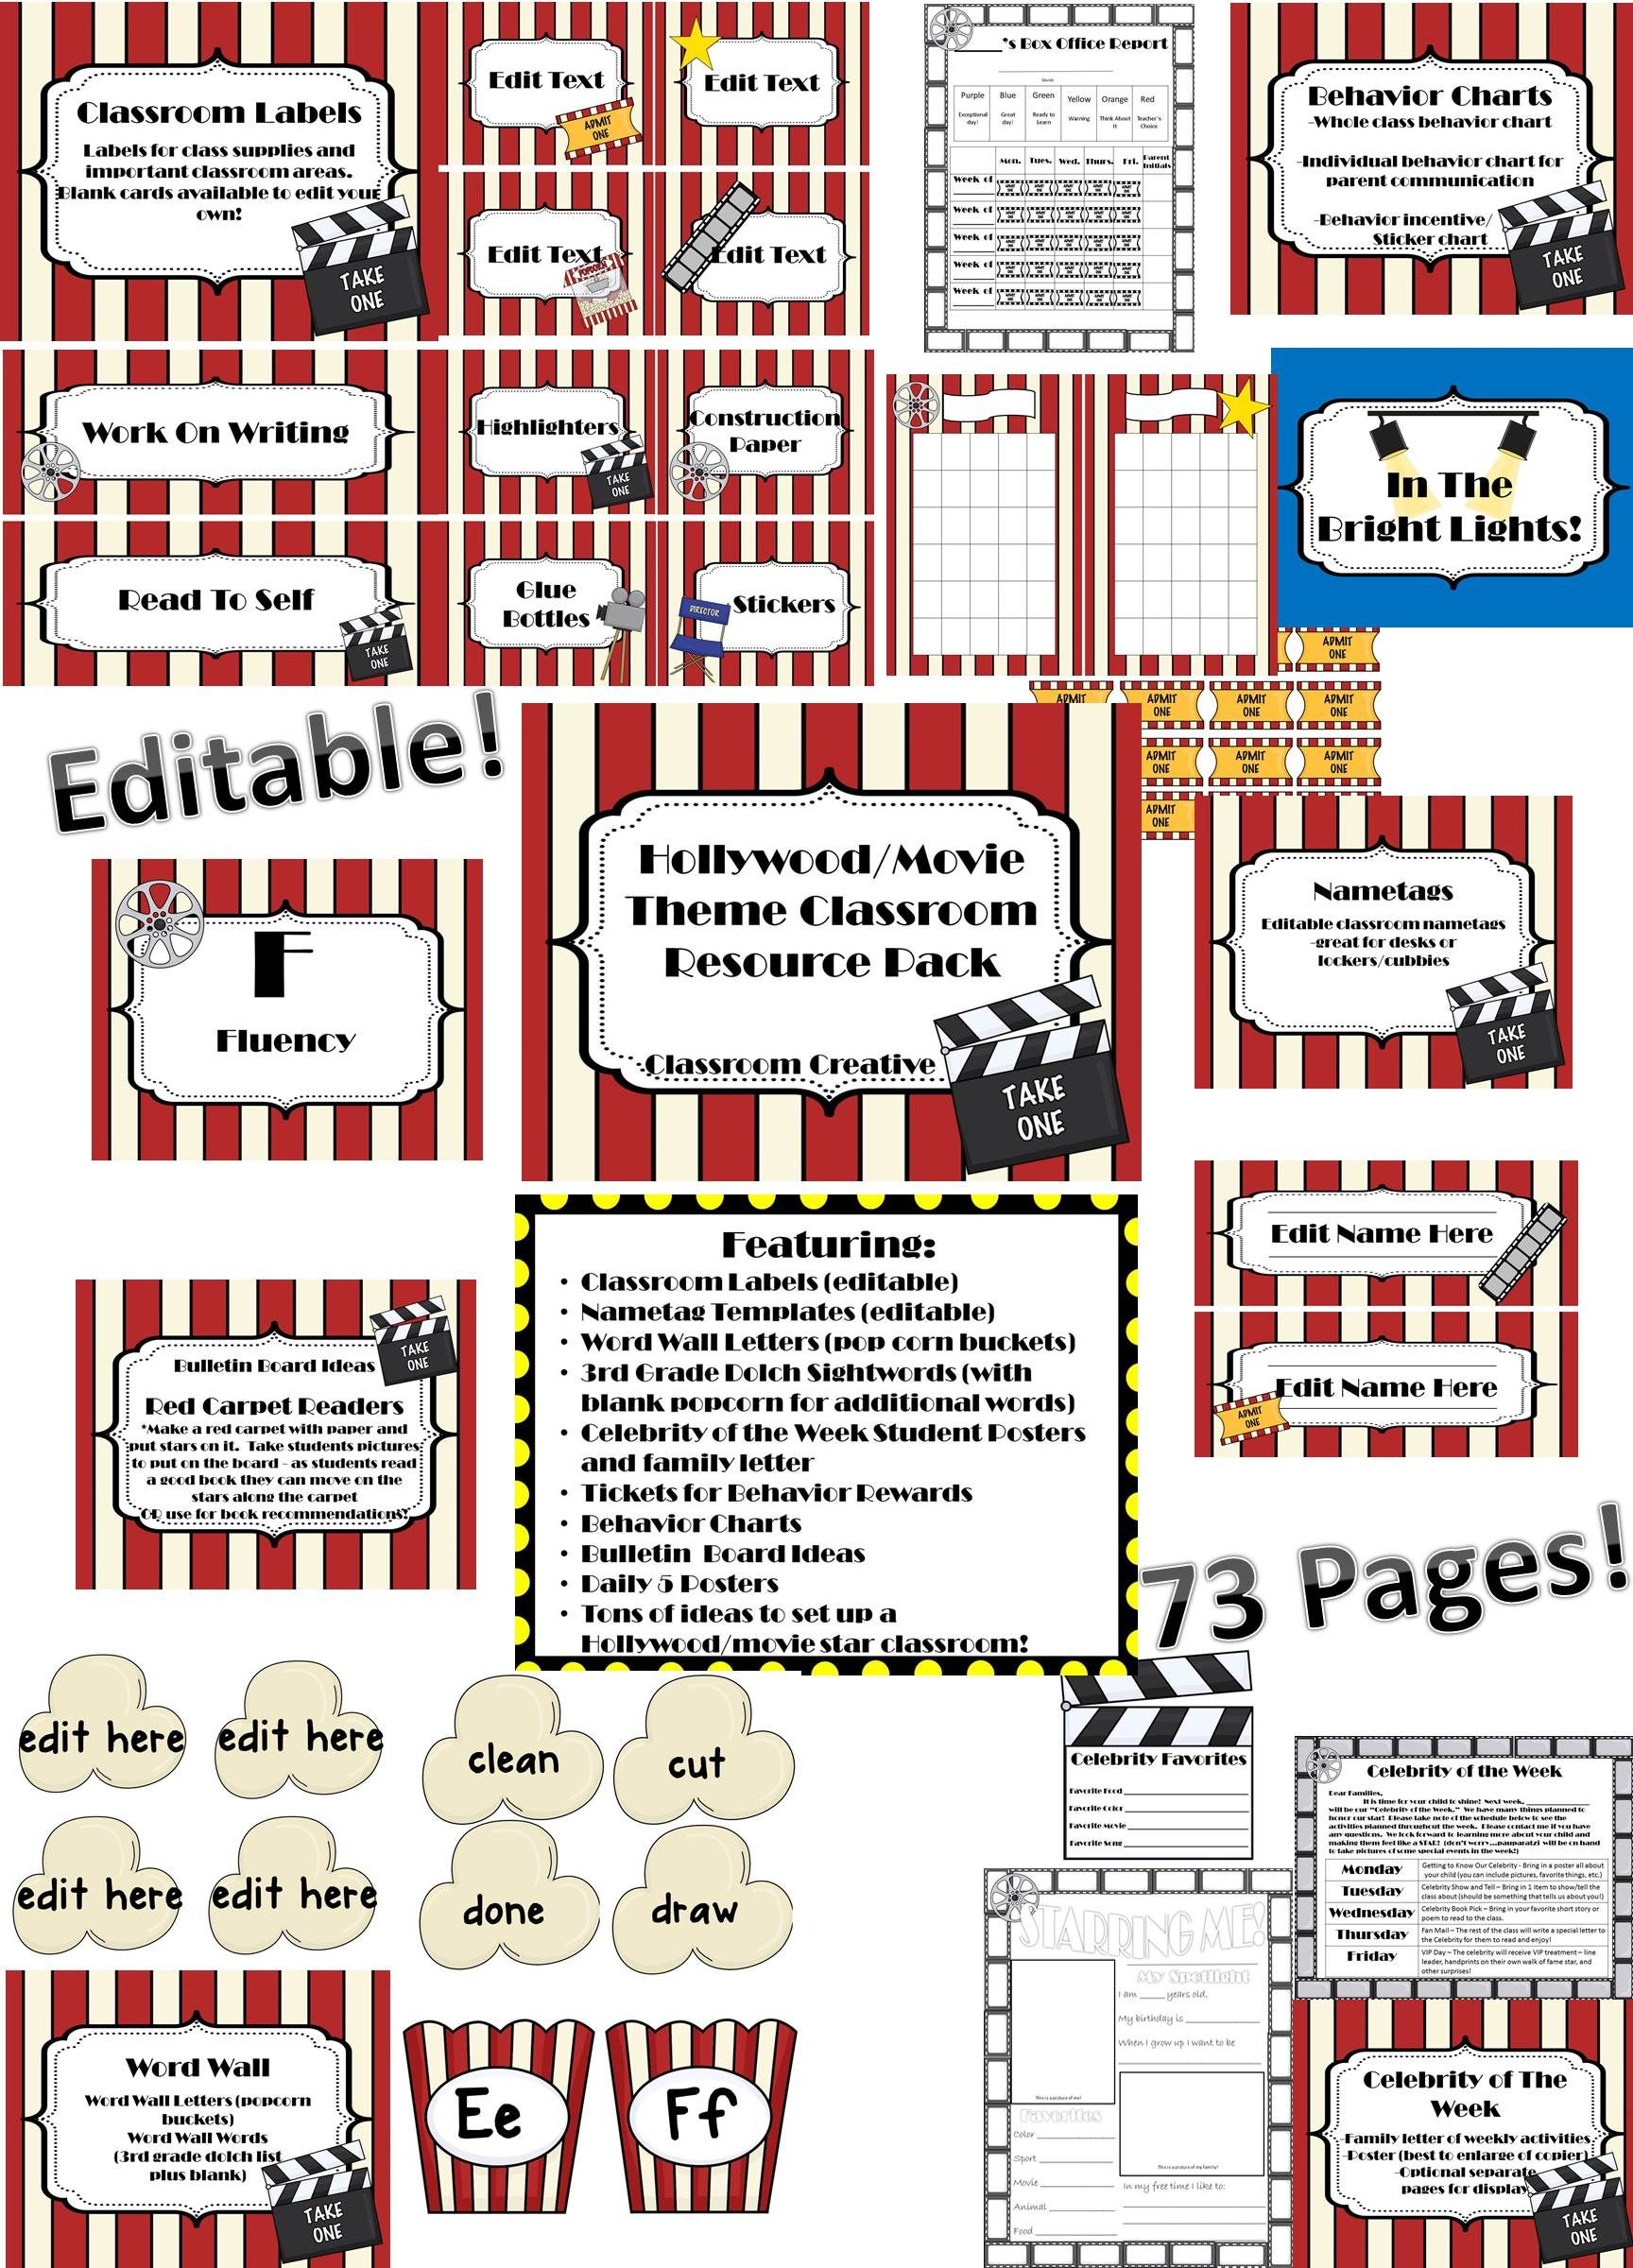 Hollywood Or Movie Theme Classroom Resource Pack